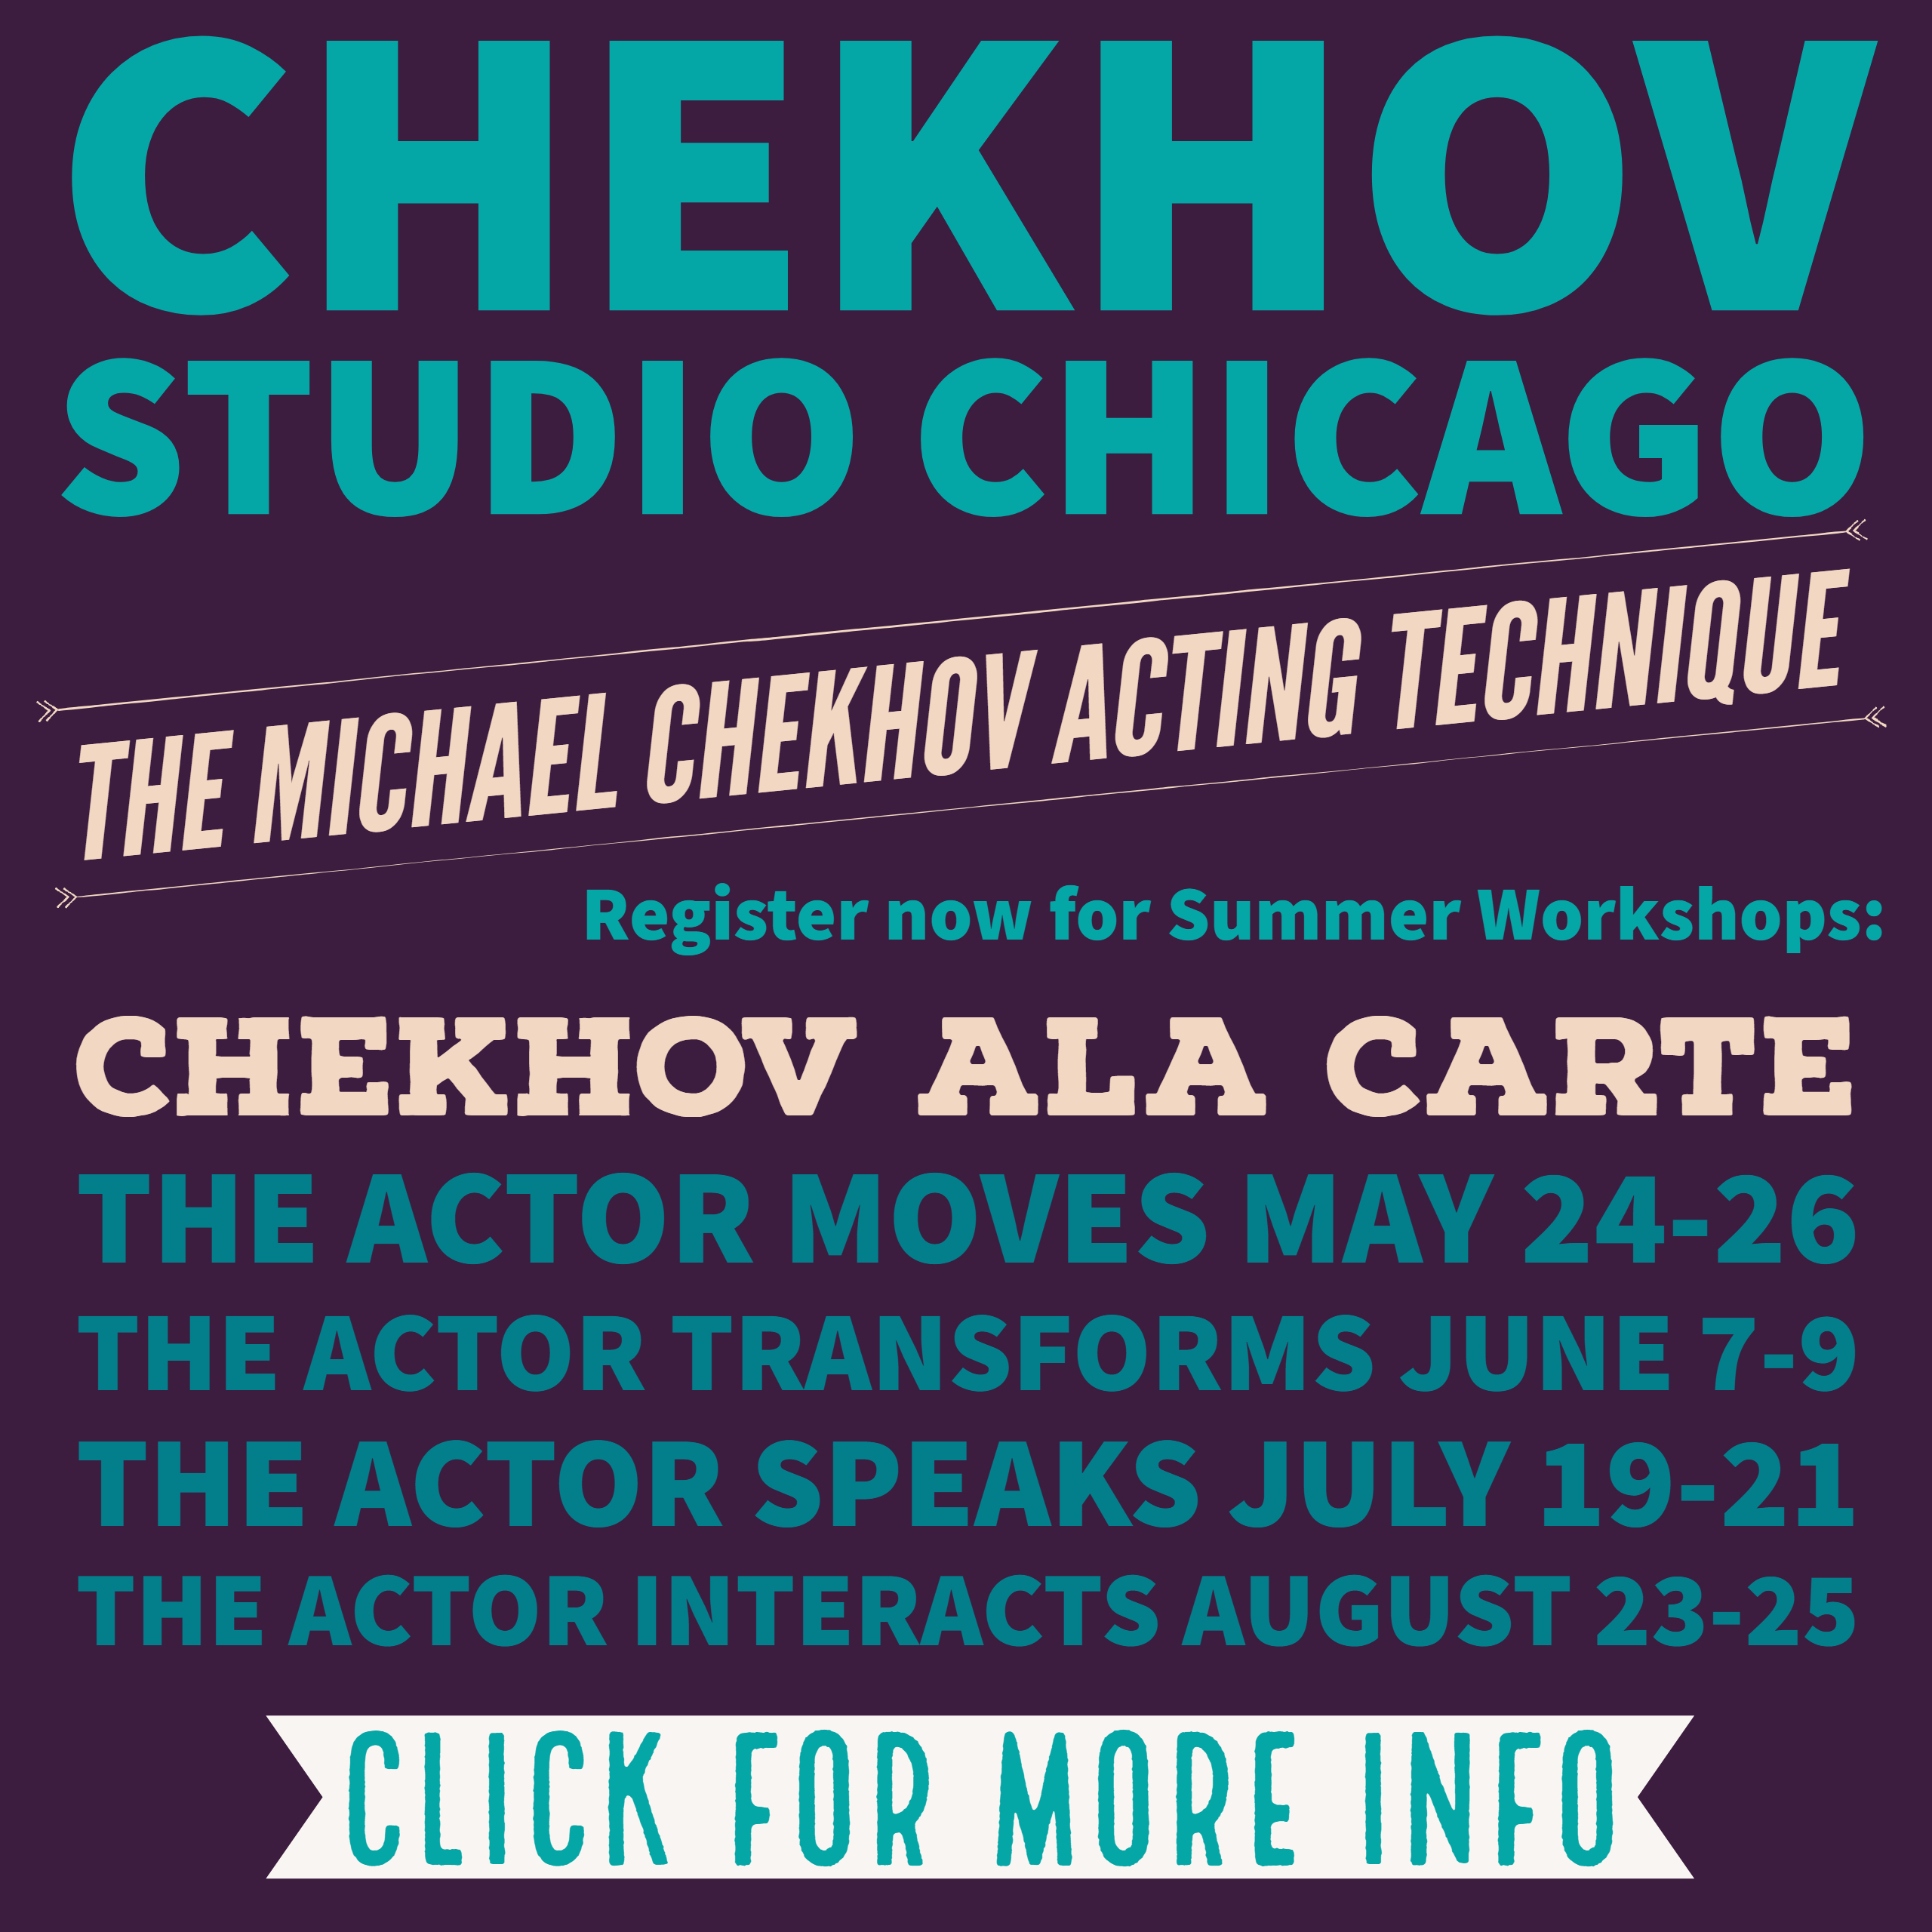 Moving Dock Chekov Ad